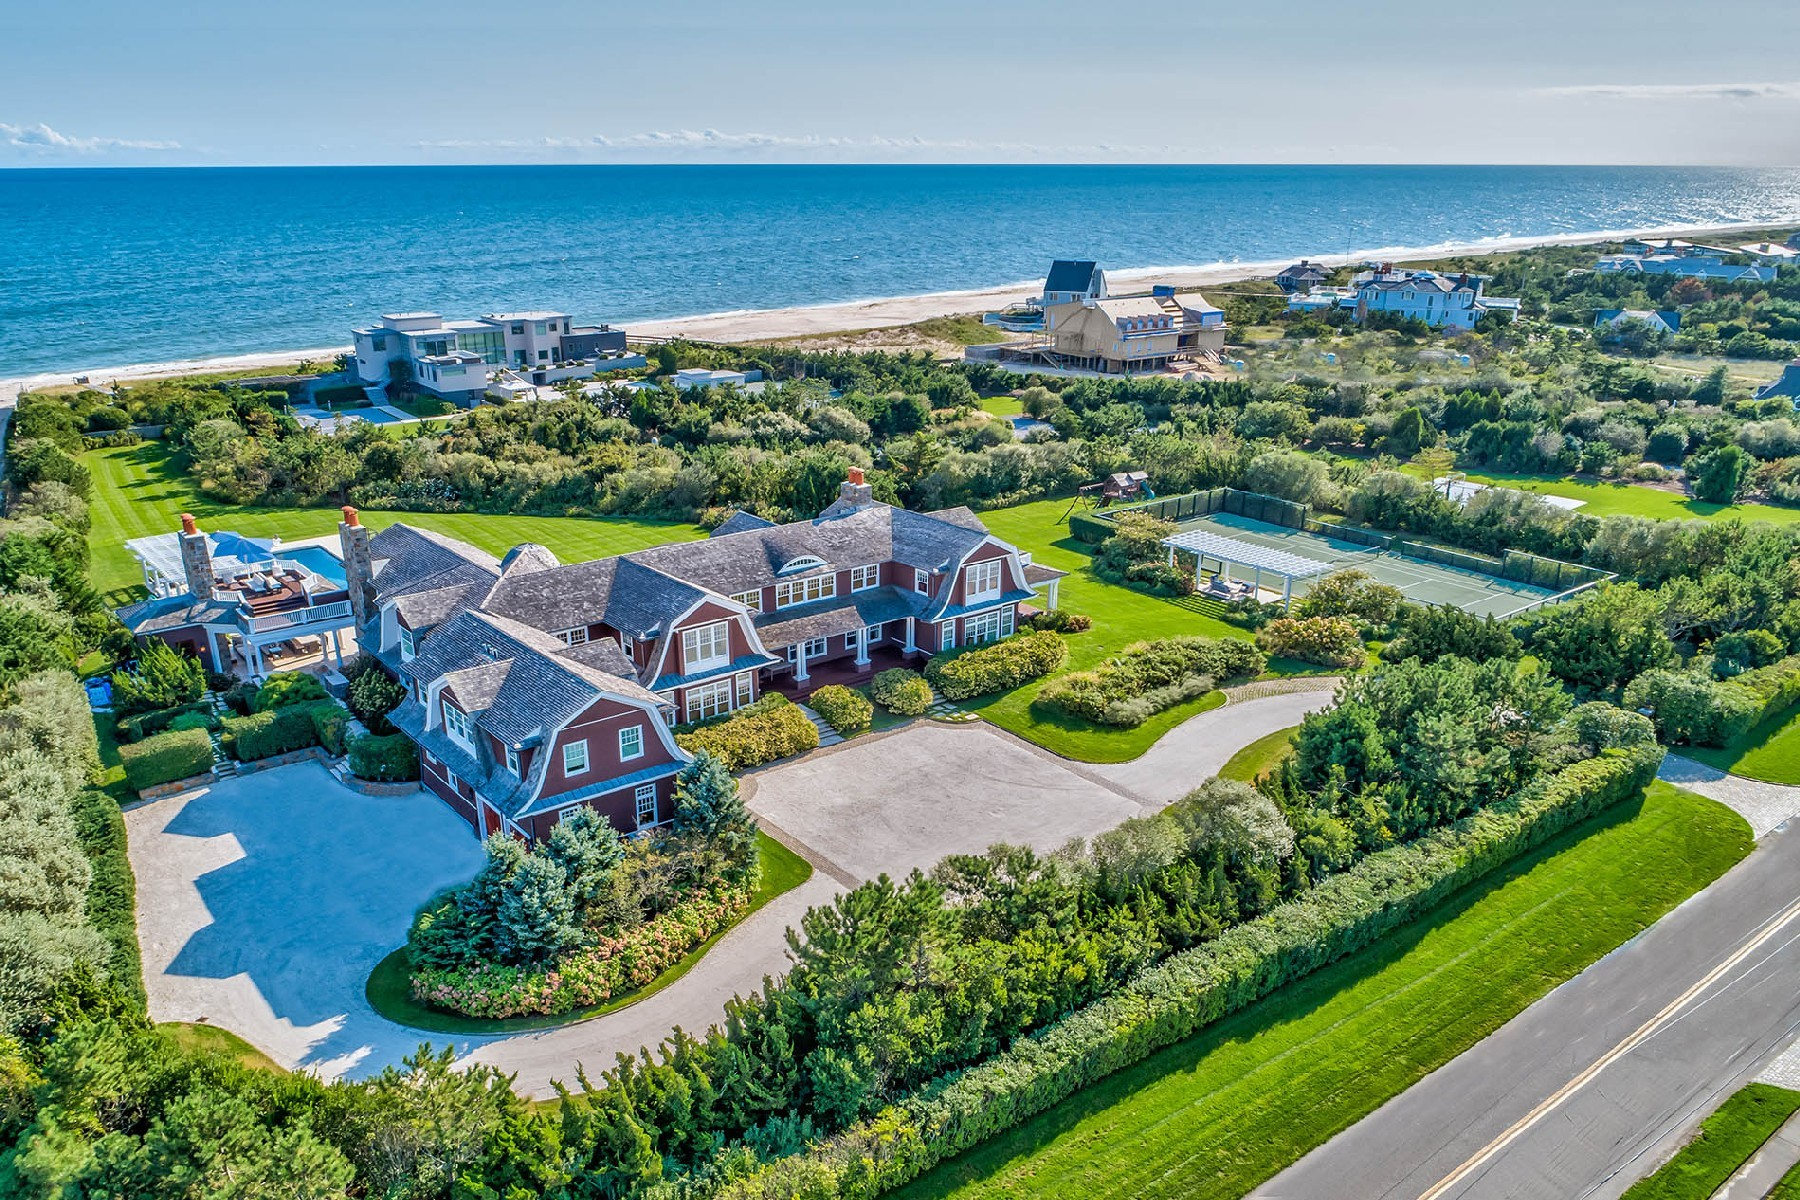 Single Family Homes for Sale at Quogue 168 Dune Rd Quogue, New York 11959 United States